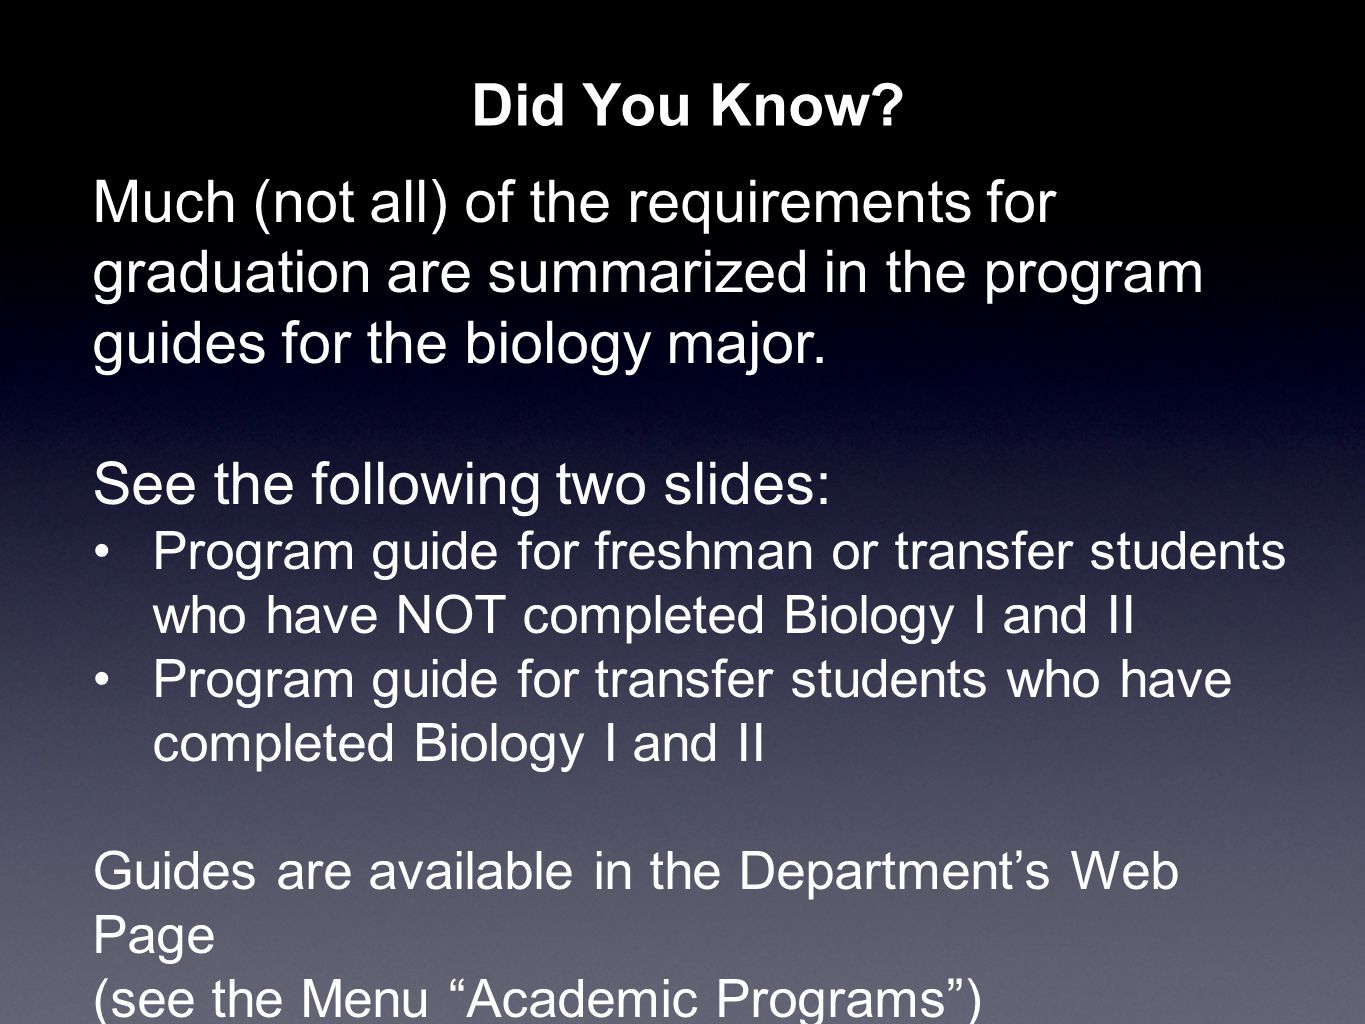 Did You Know? Much (not all) of the requirements for graduation are summarized in the program guides for the biology major. See the following two slid